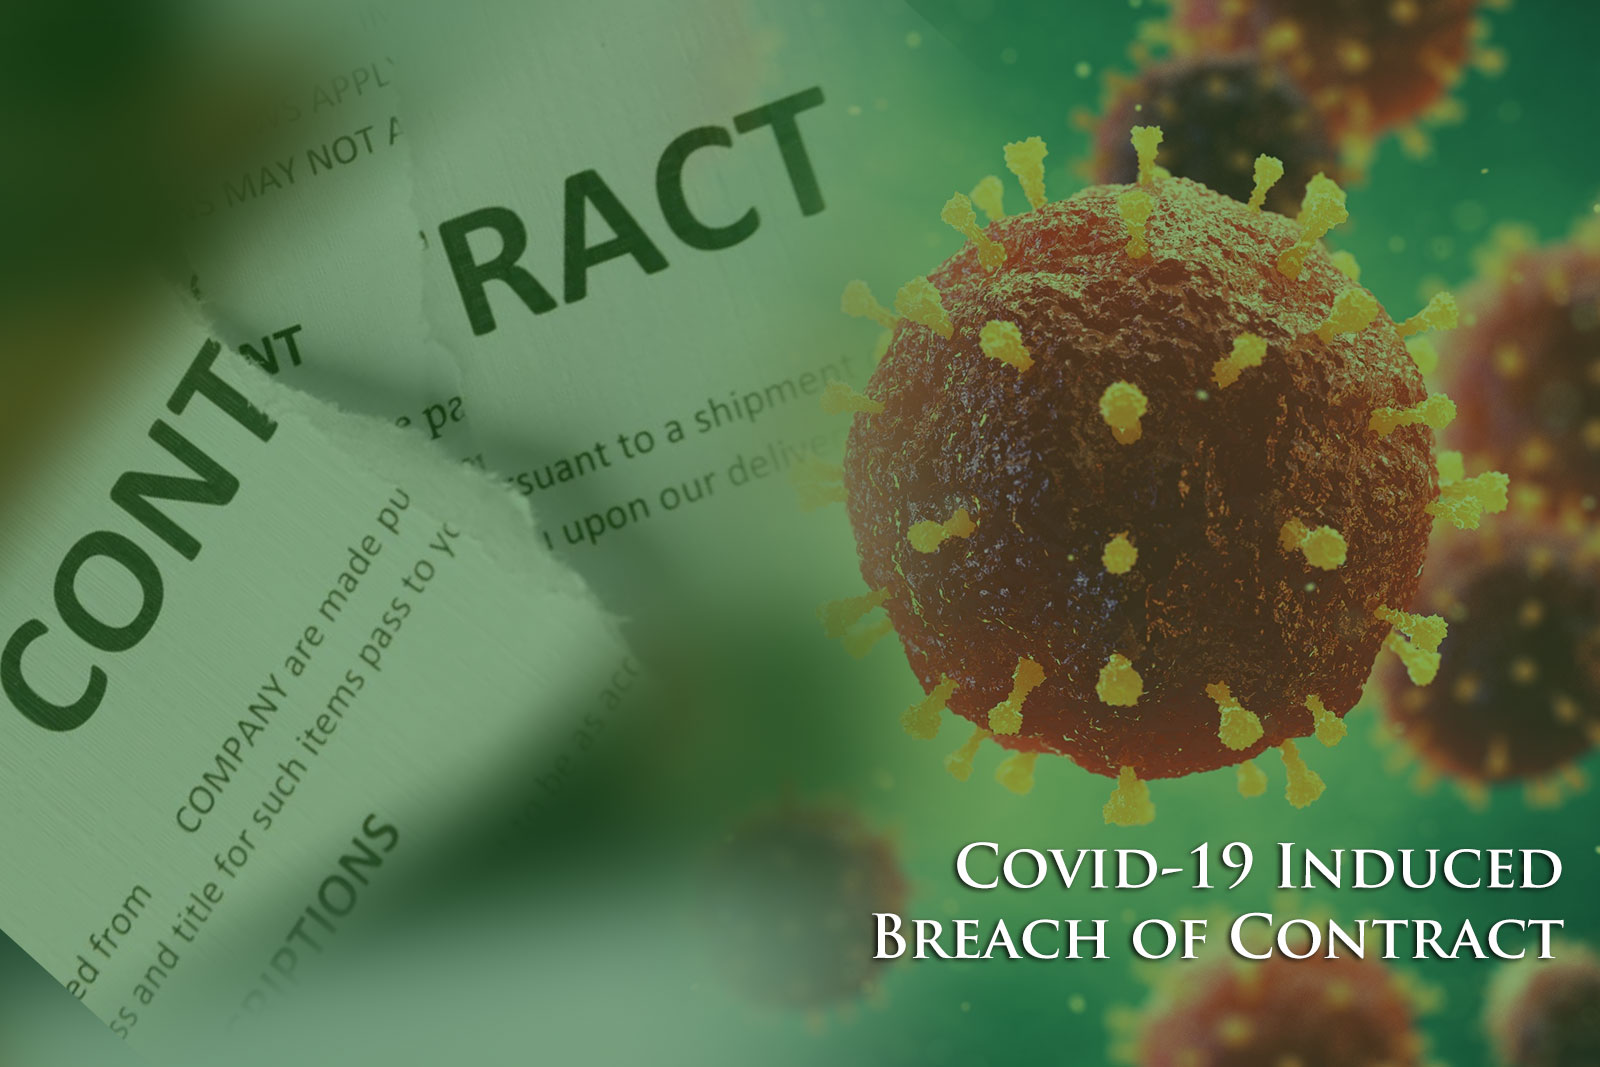 Covid-19 Induced Breach of Contract